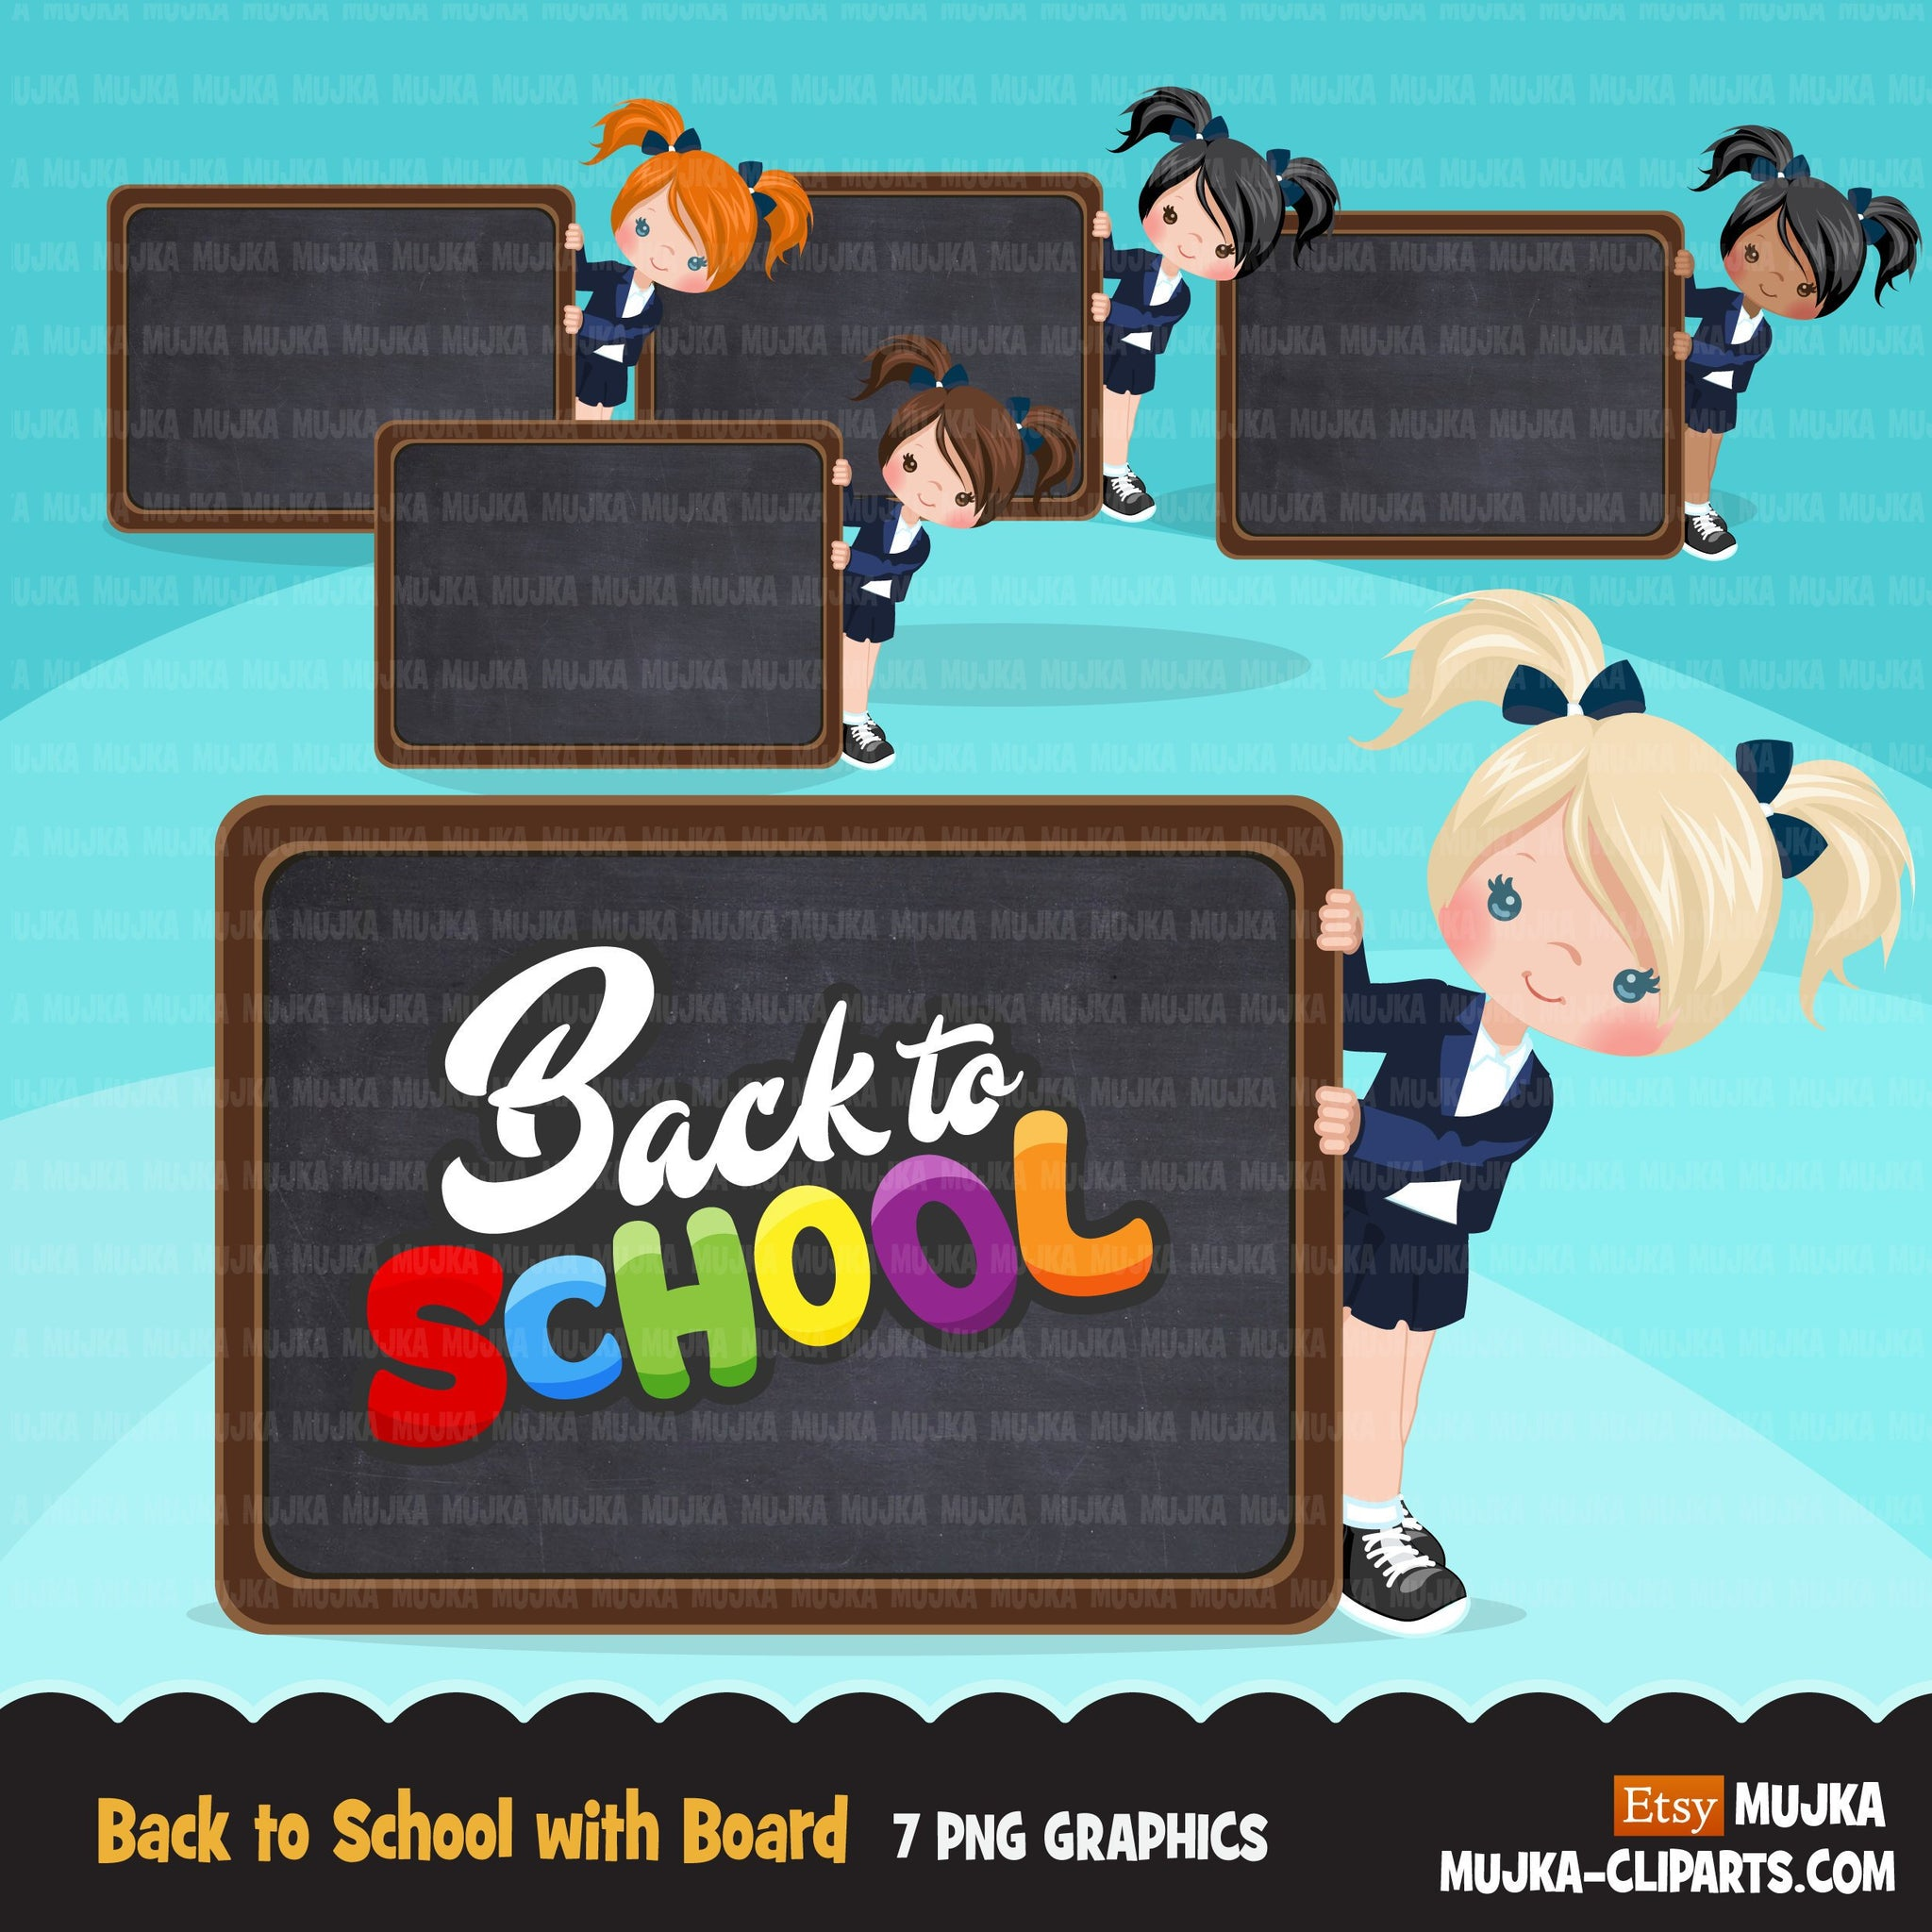 Back to school clipart with Girl students and black board, Education, teaching graphics